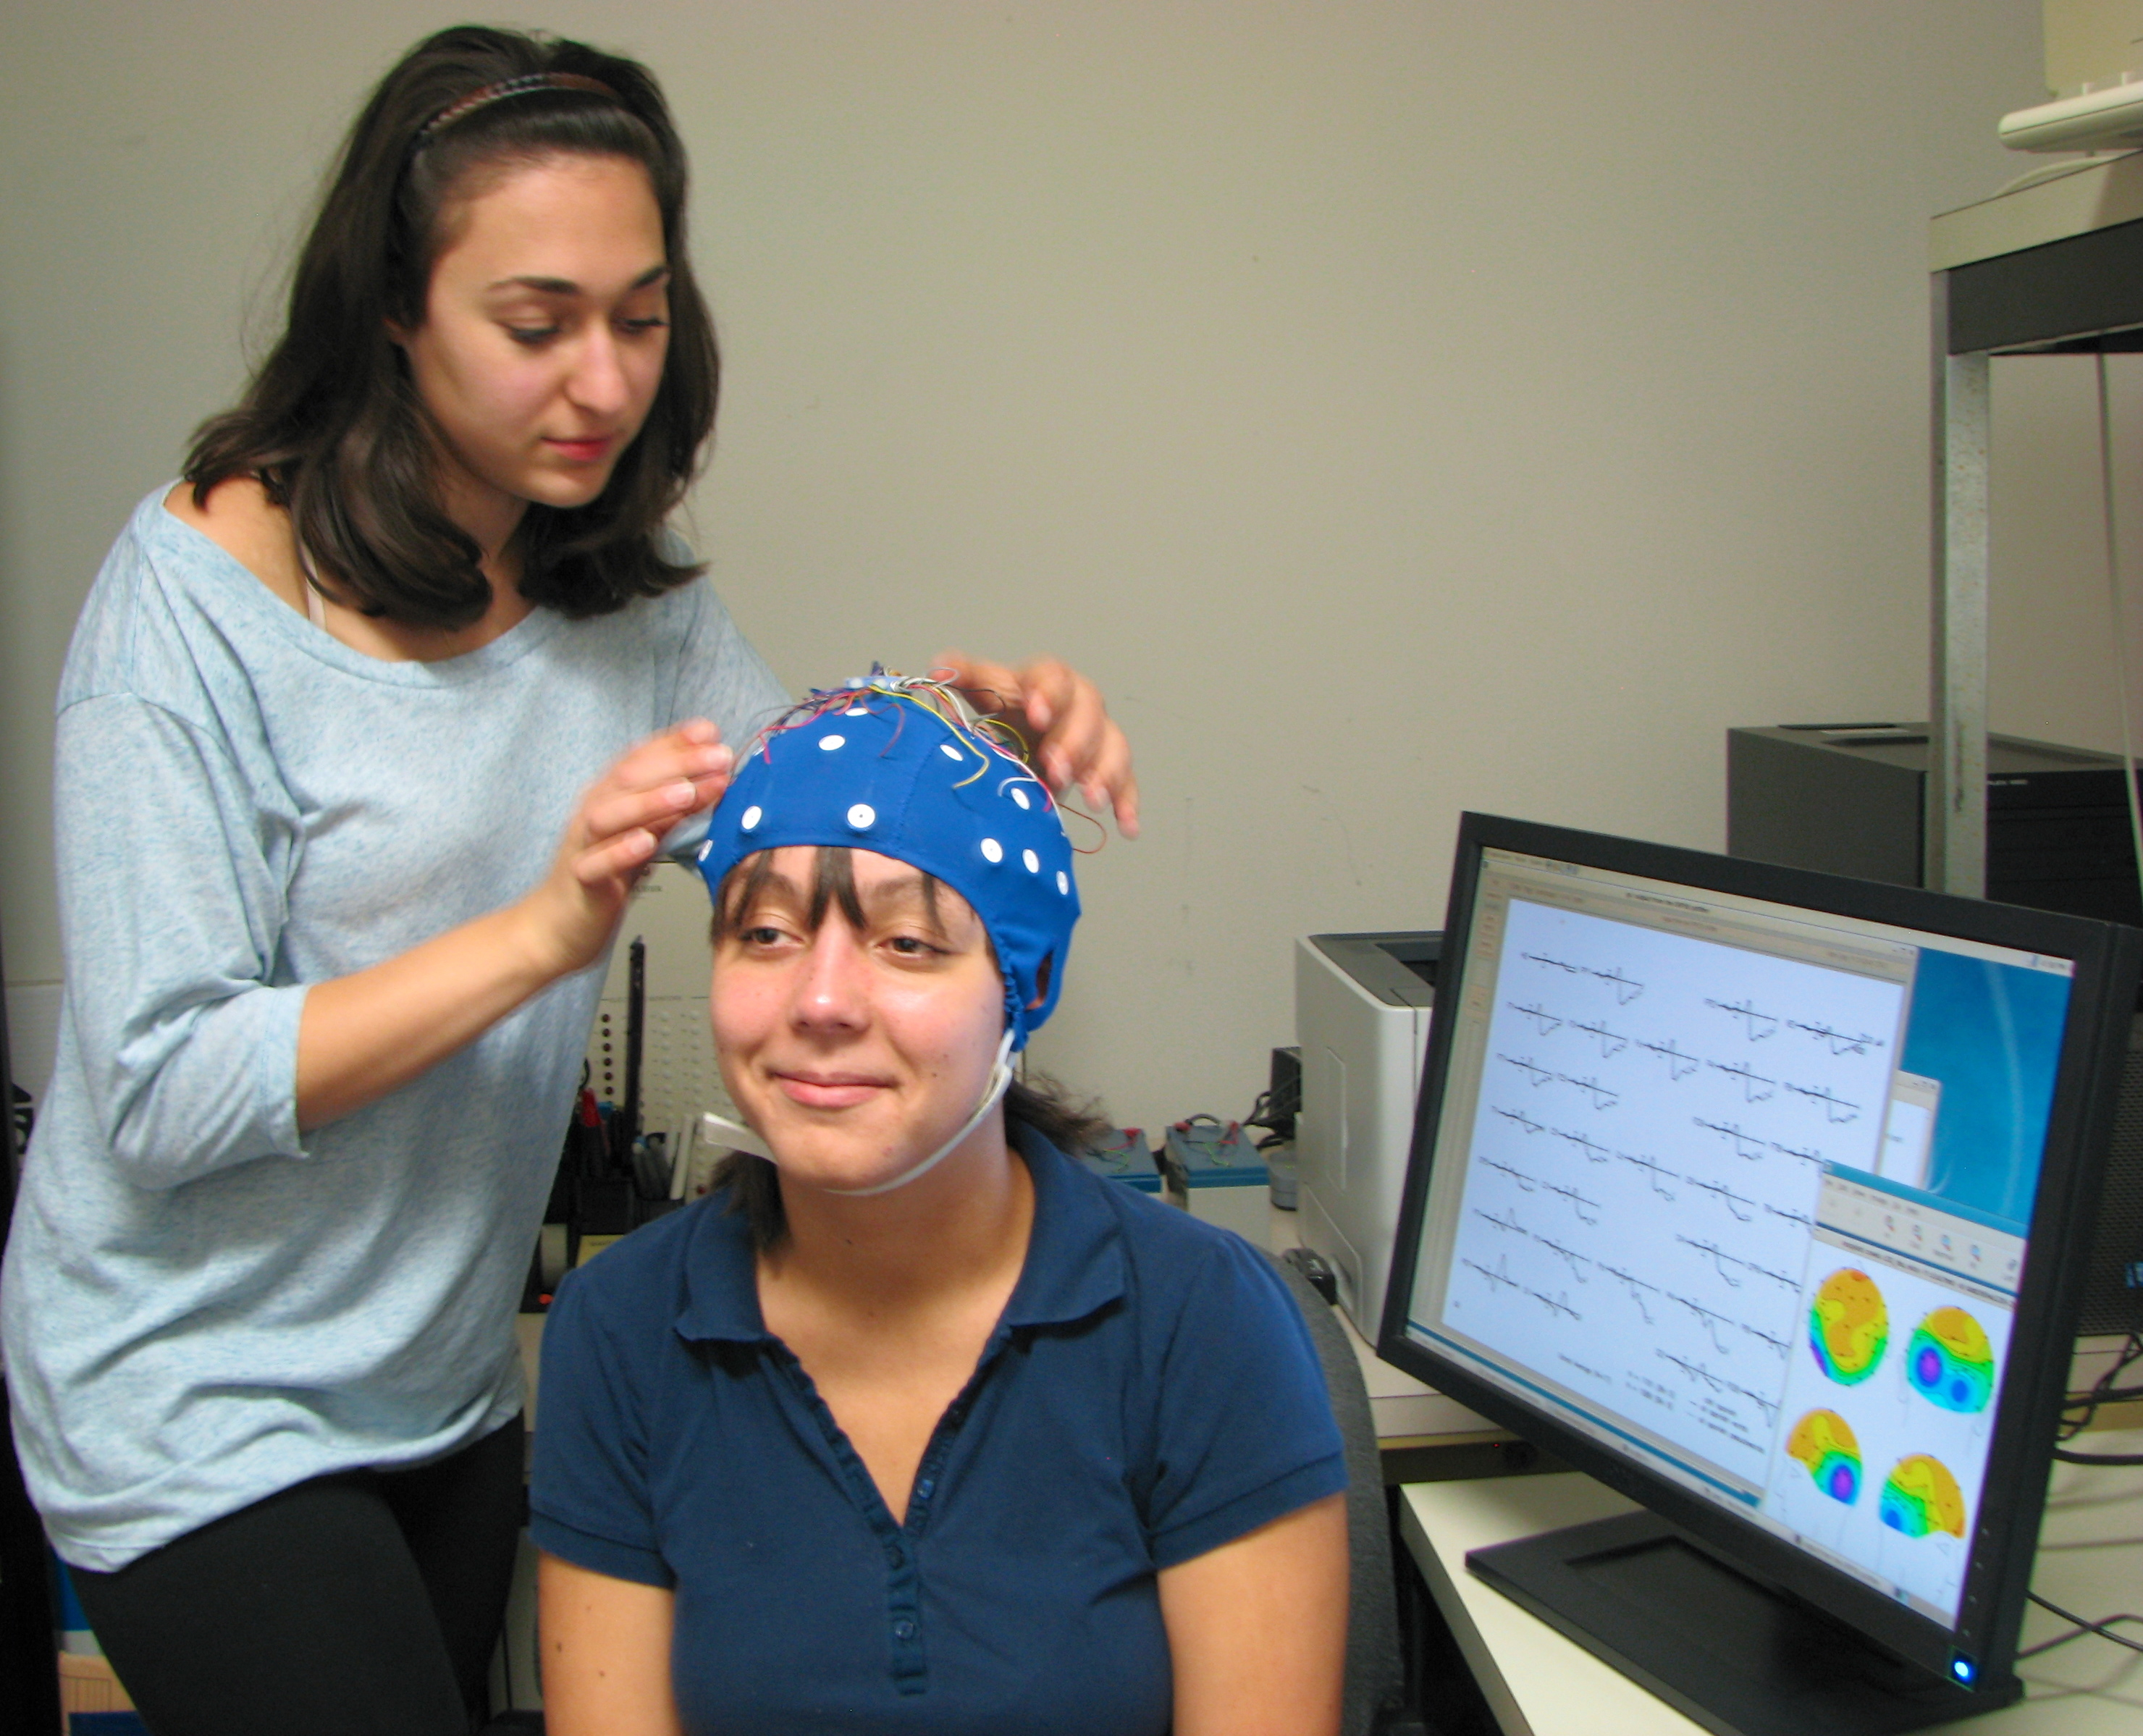 psychology and the use of electroencephalogram When children and adults think, different groups of neurons are activated at the same time this gives rise to small electro-magnetic signals that can be measured on the surface of the head with the help of small sensors our eeg system uses a net with 128 sensors which is placed on the head just like a hat it's very simple.